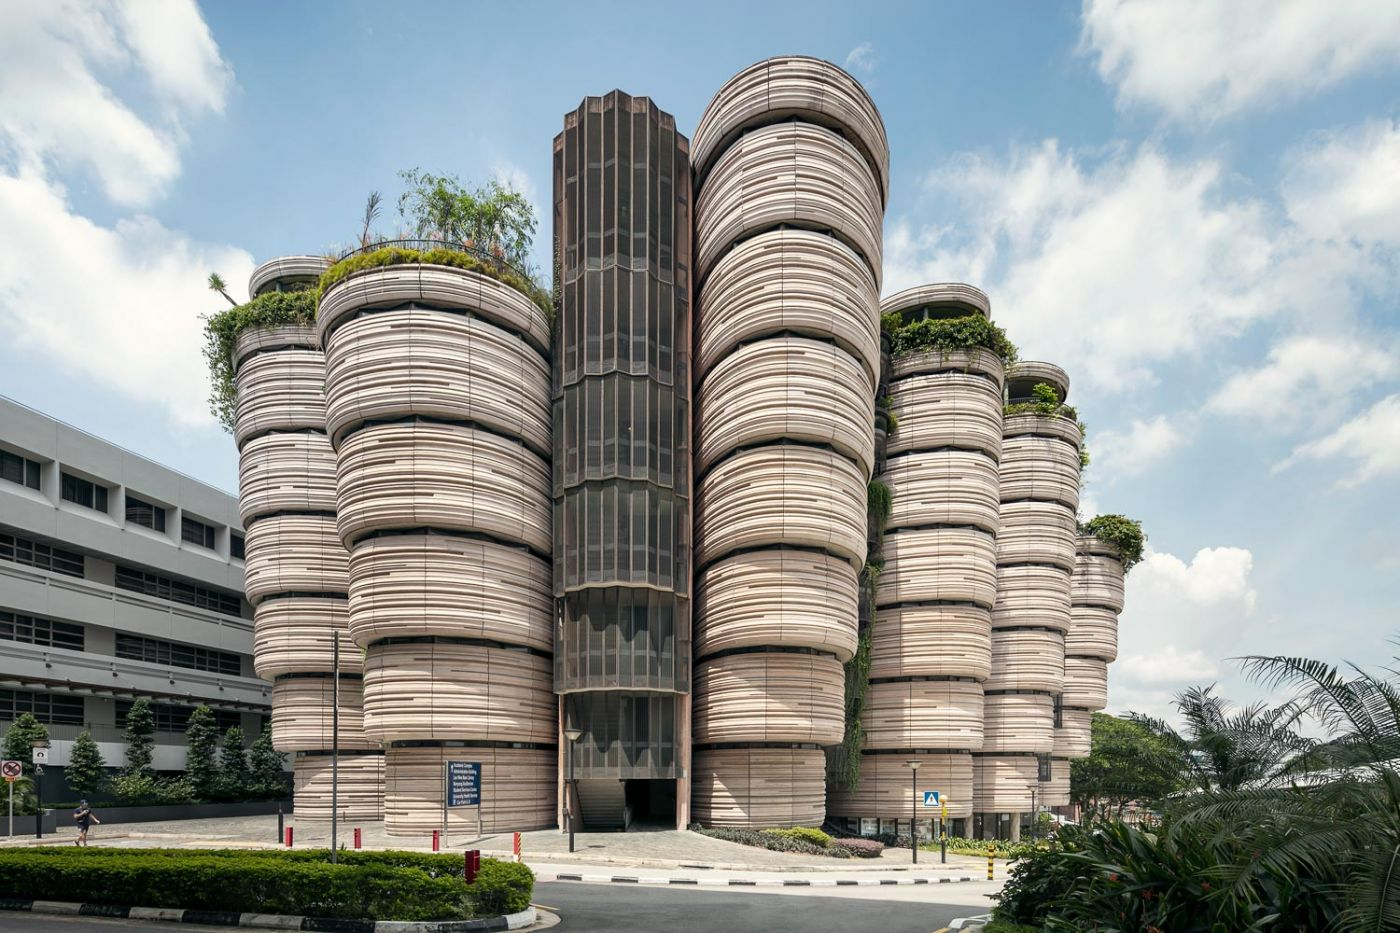 The Learning Hub at Nanyang Technological University Singapur